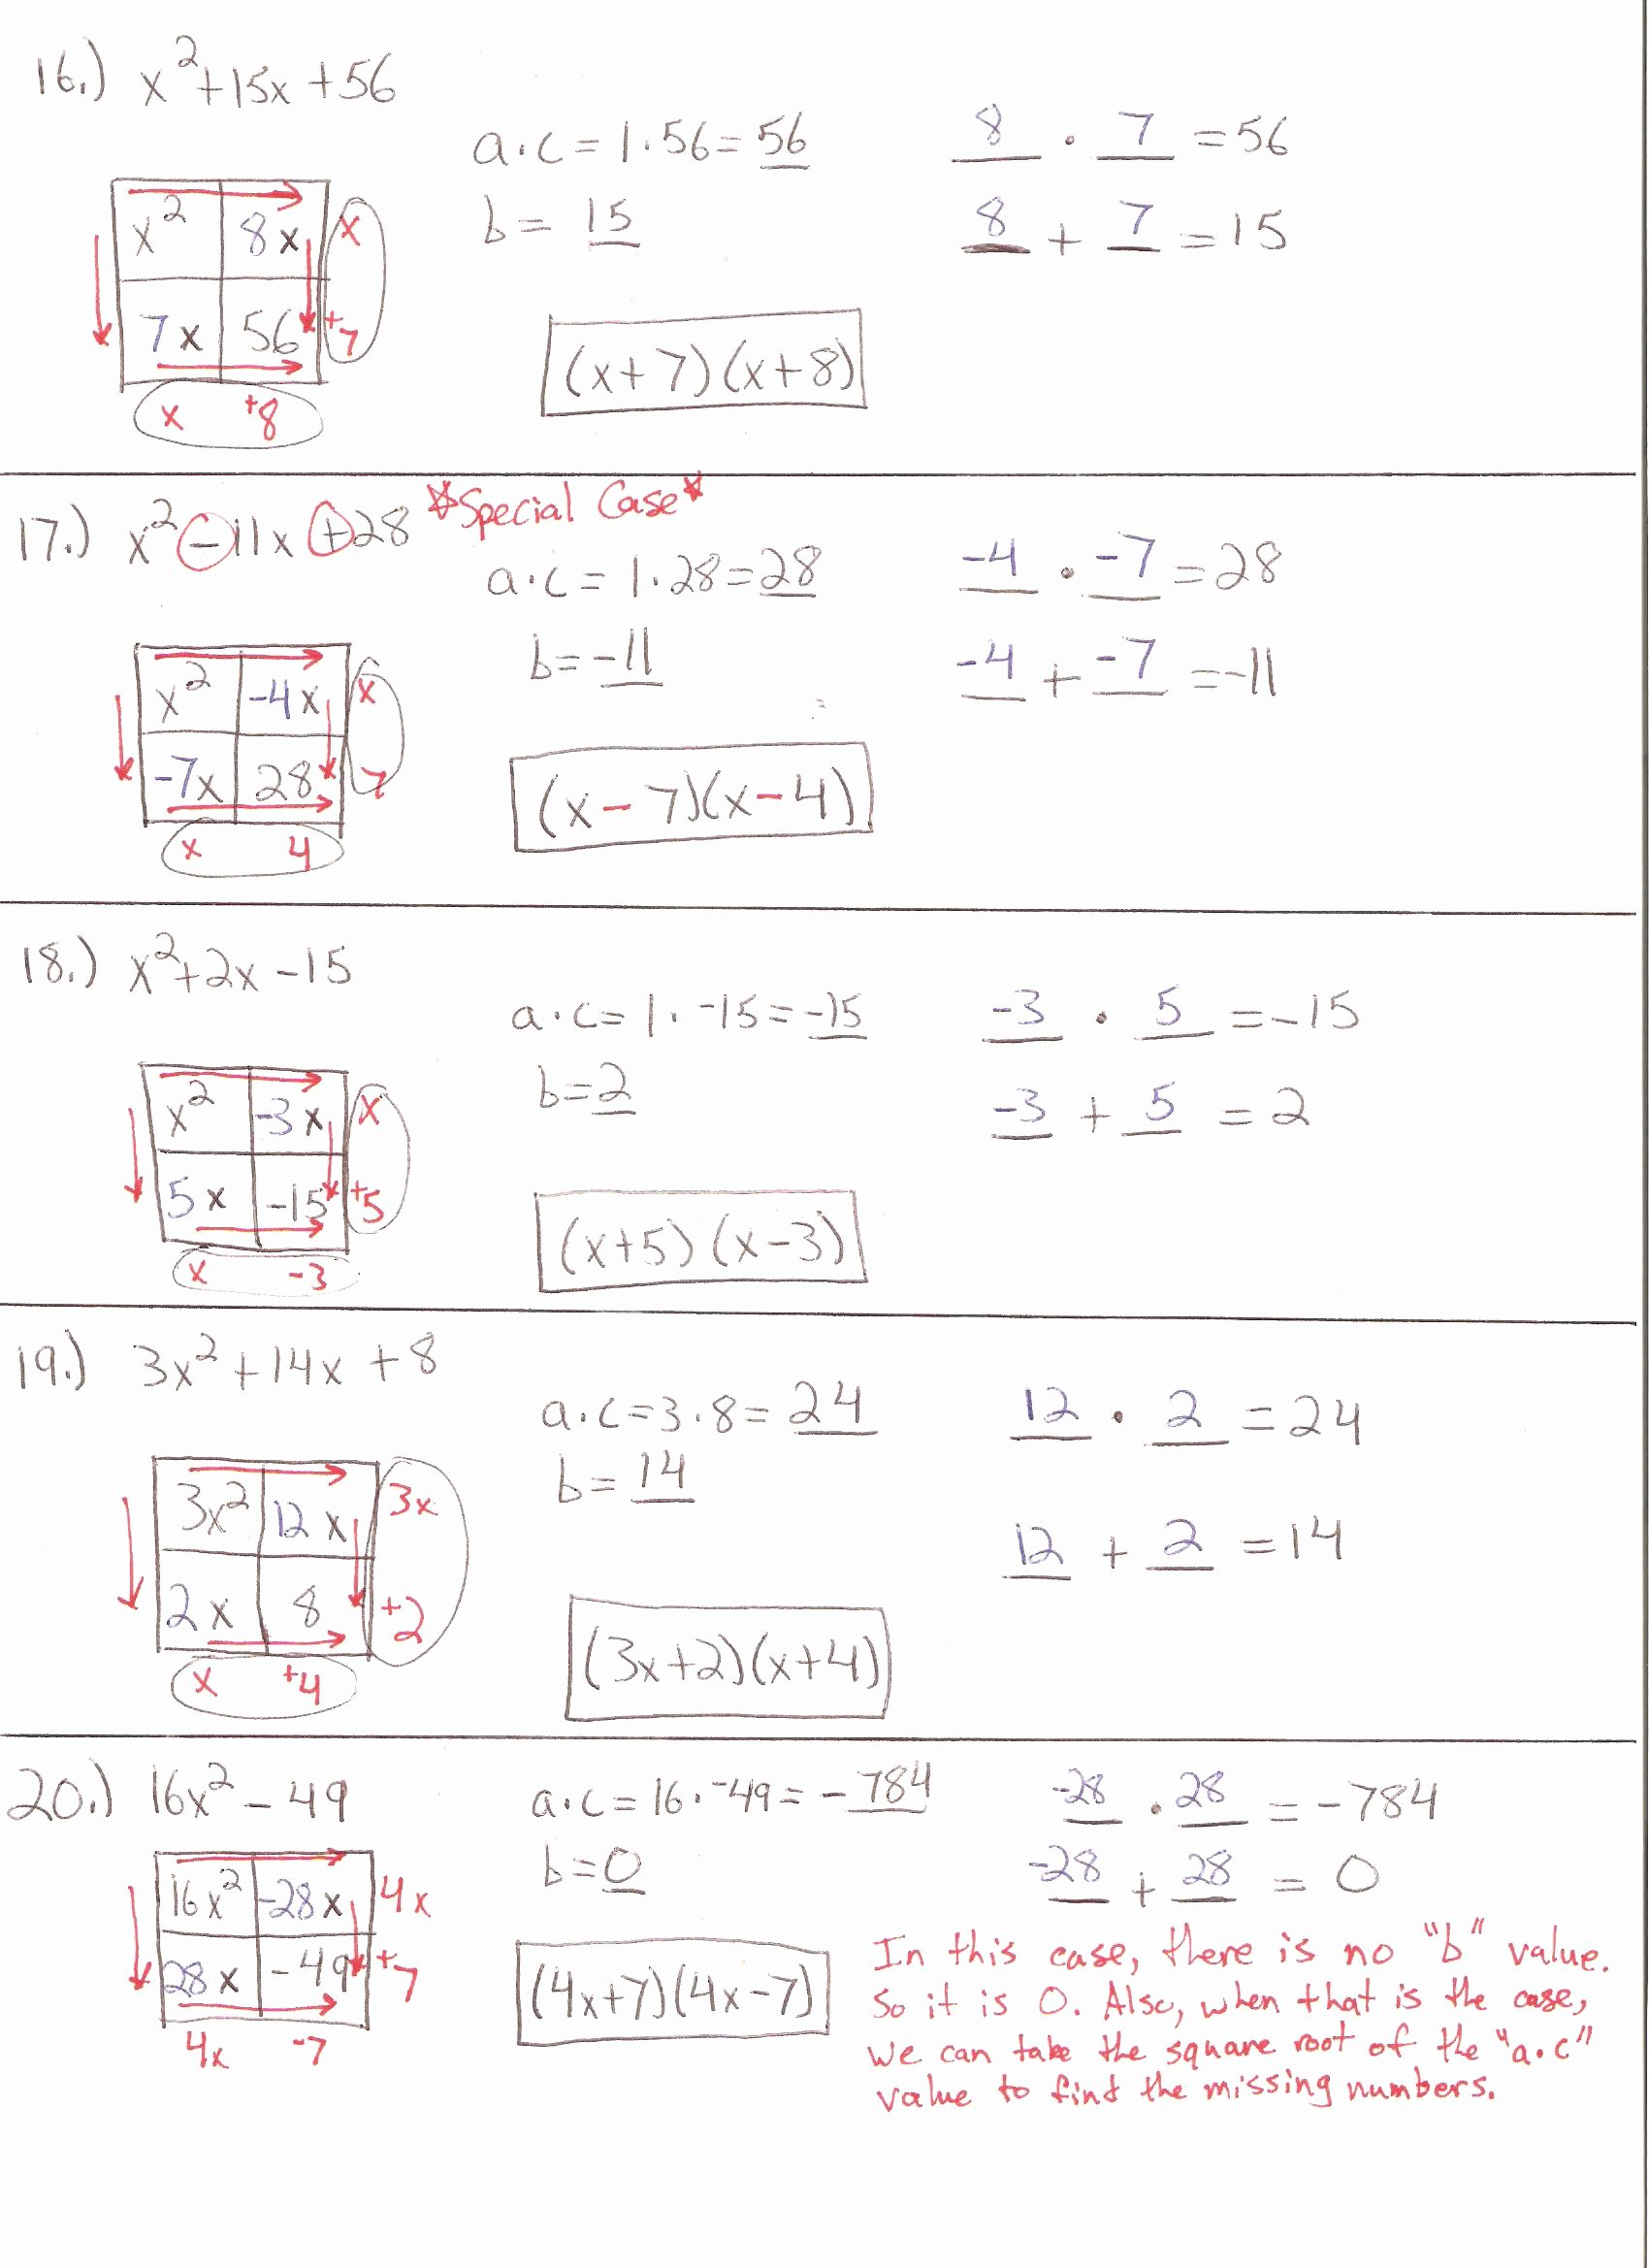 Factoring Quadratic Equations Worksheet Best Of Factoring the Difference Squares Worksheet